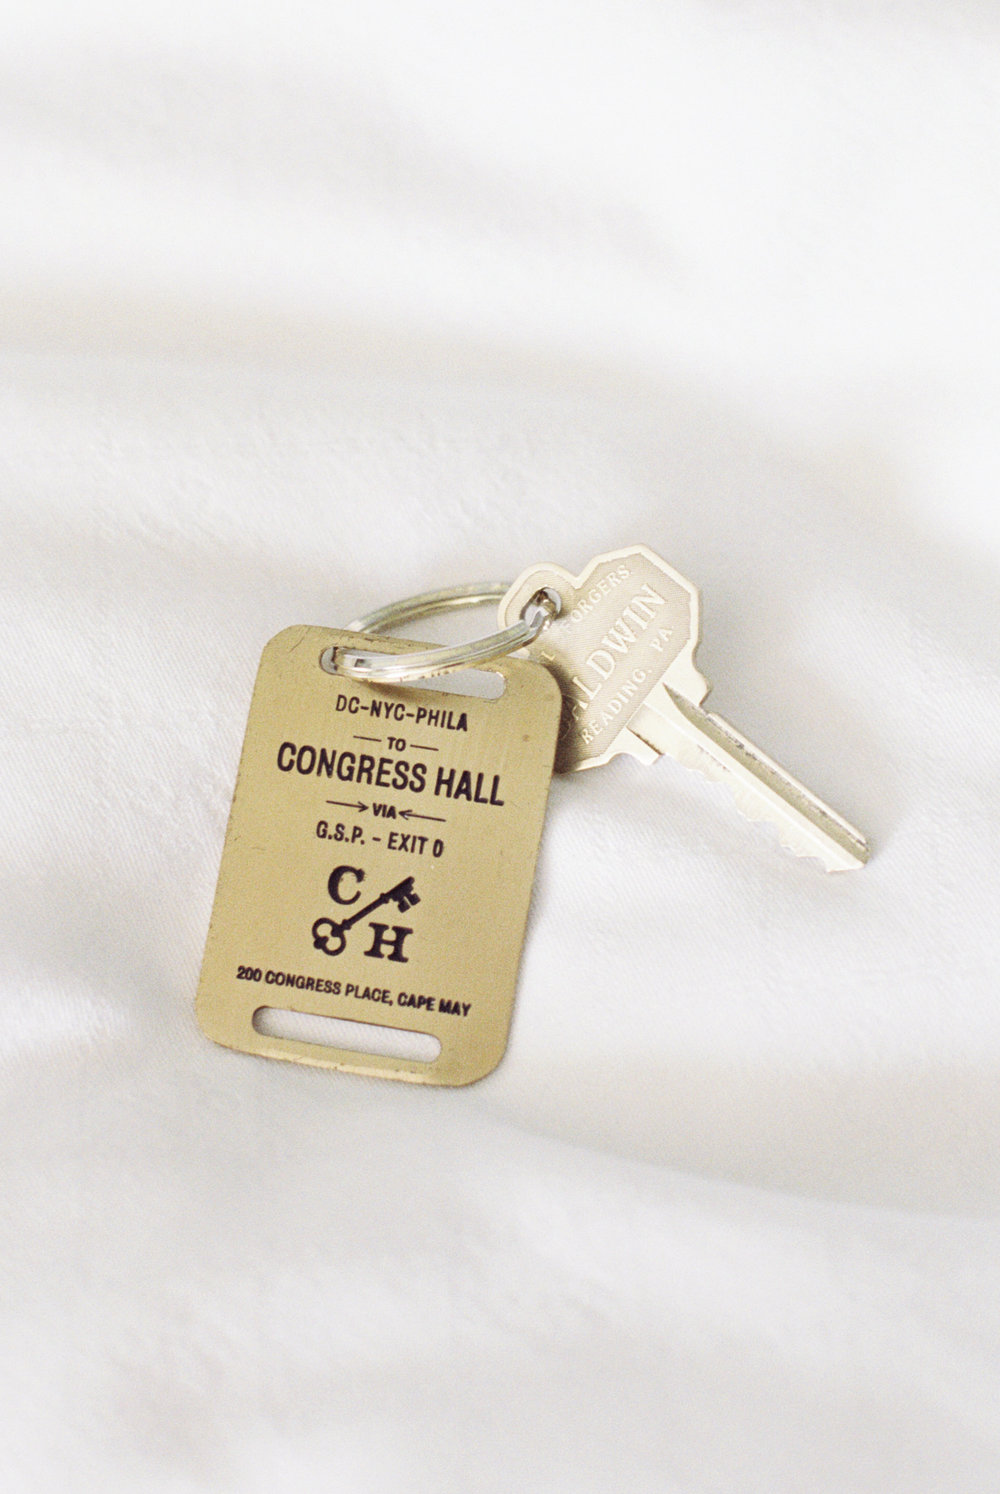 Branding photography for your business. Hotel key from Congress Hall in Cape May, New Jersey